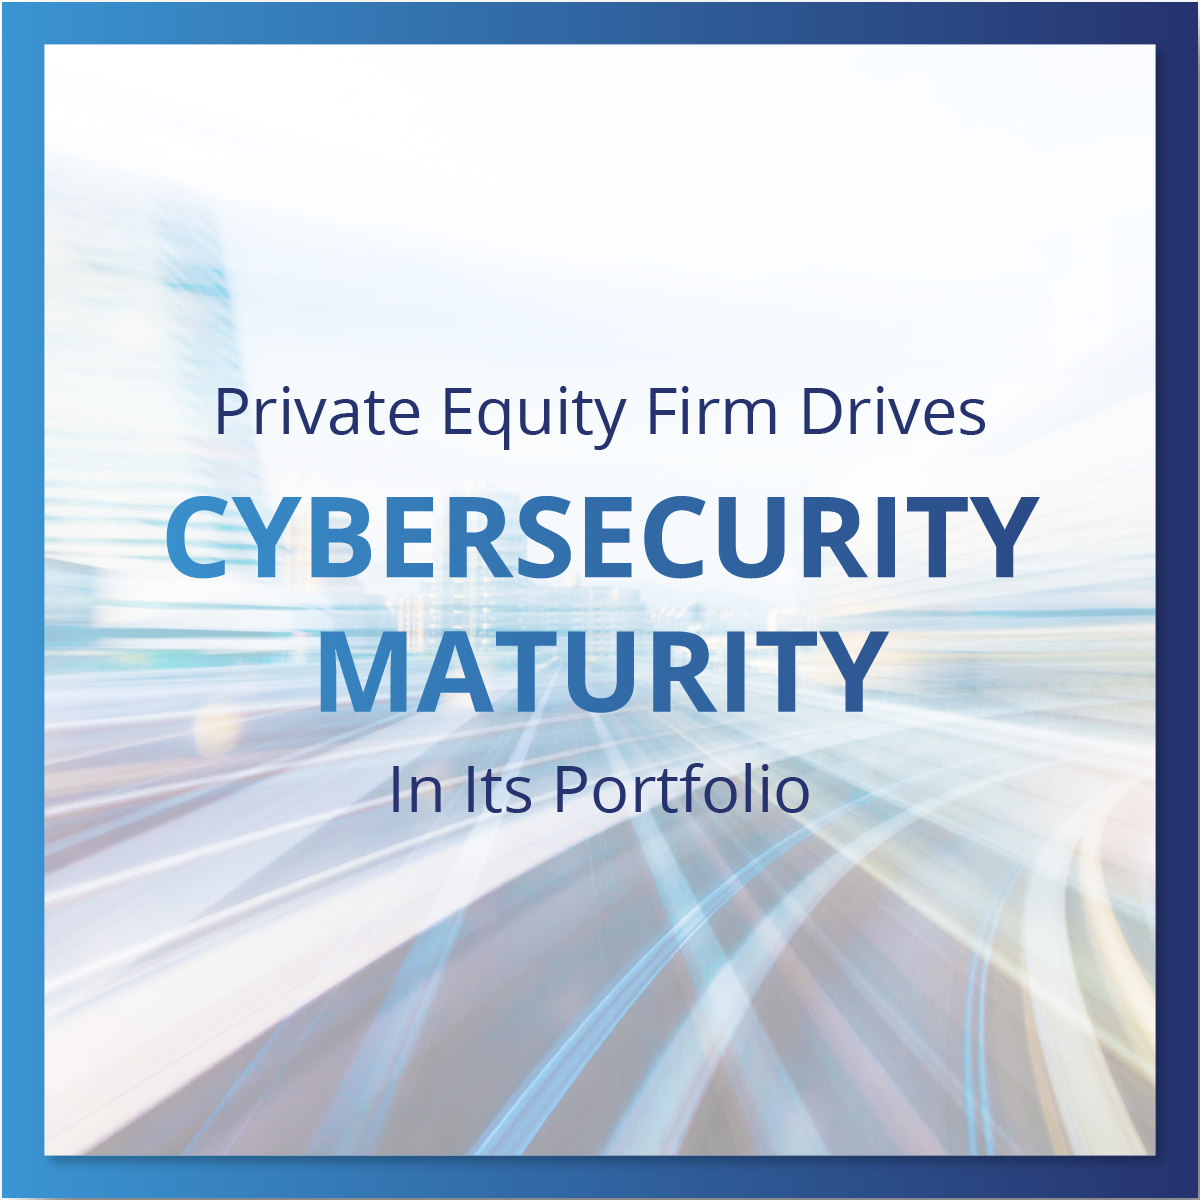 Private Equity Firm Drives Cybersecurity Maturity in its Portfolio